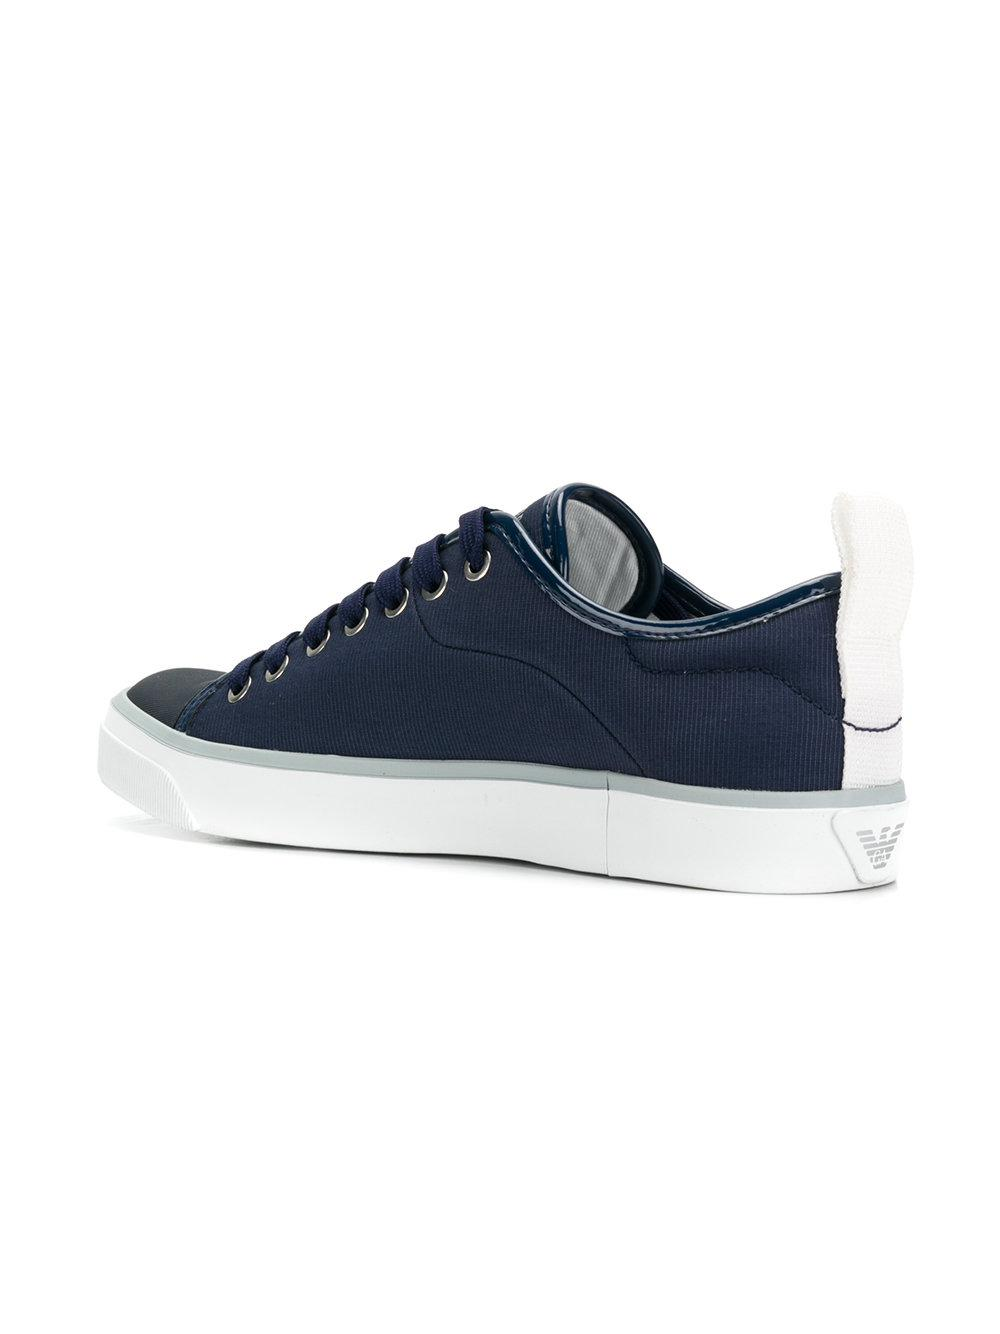 side logo printed sneakers - Blue Emporio Armani Wide Range Of For Sale 9Nbq9Hsg